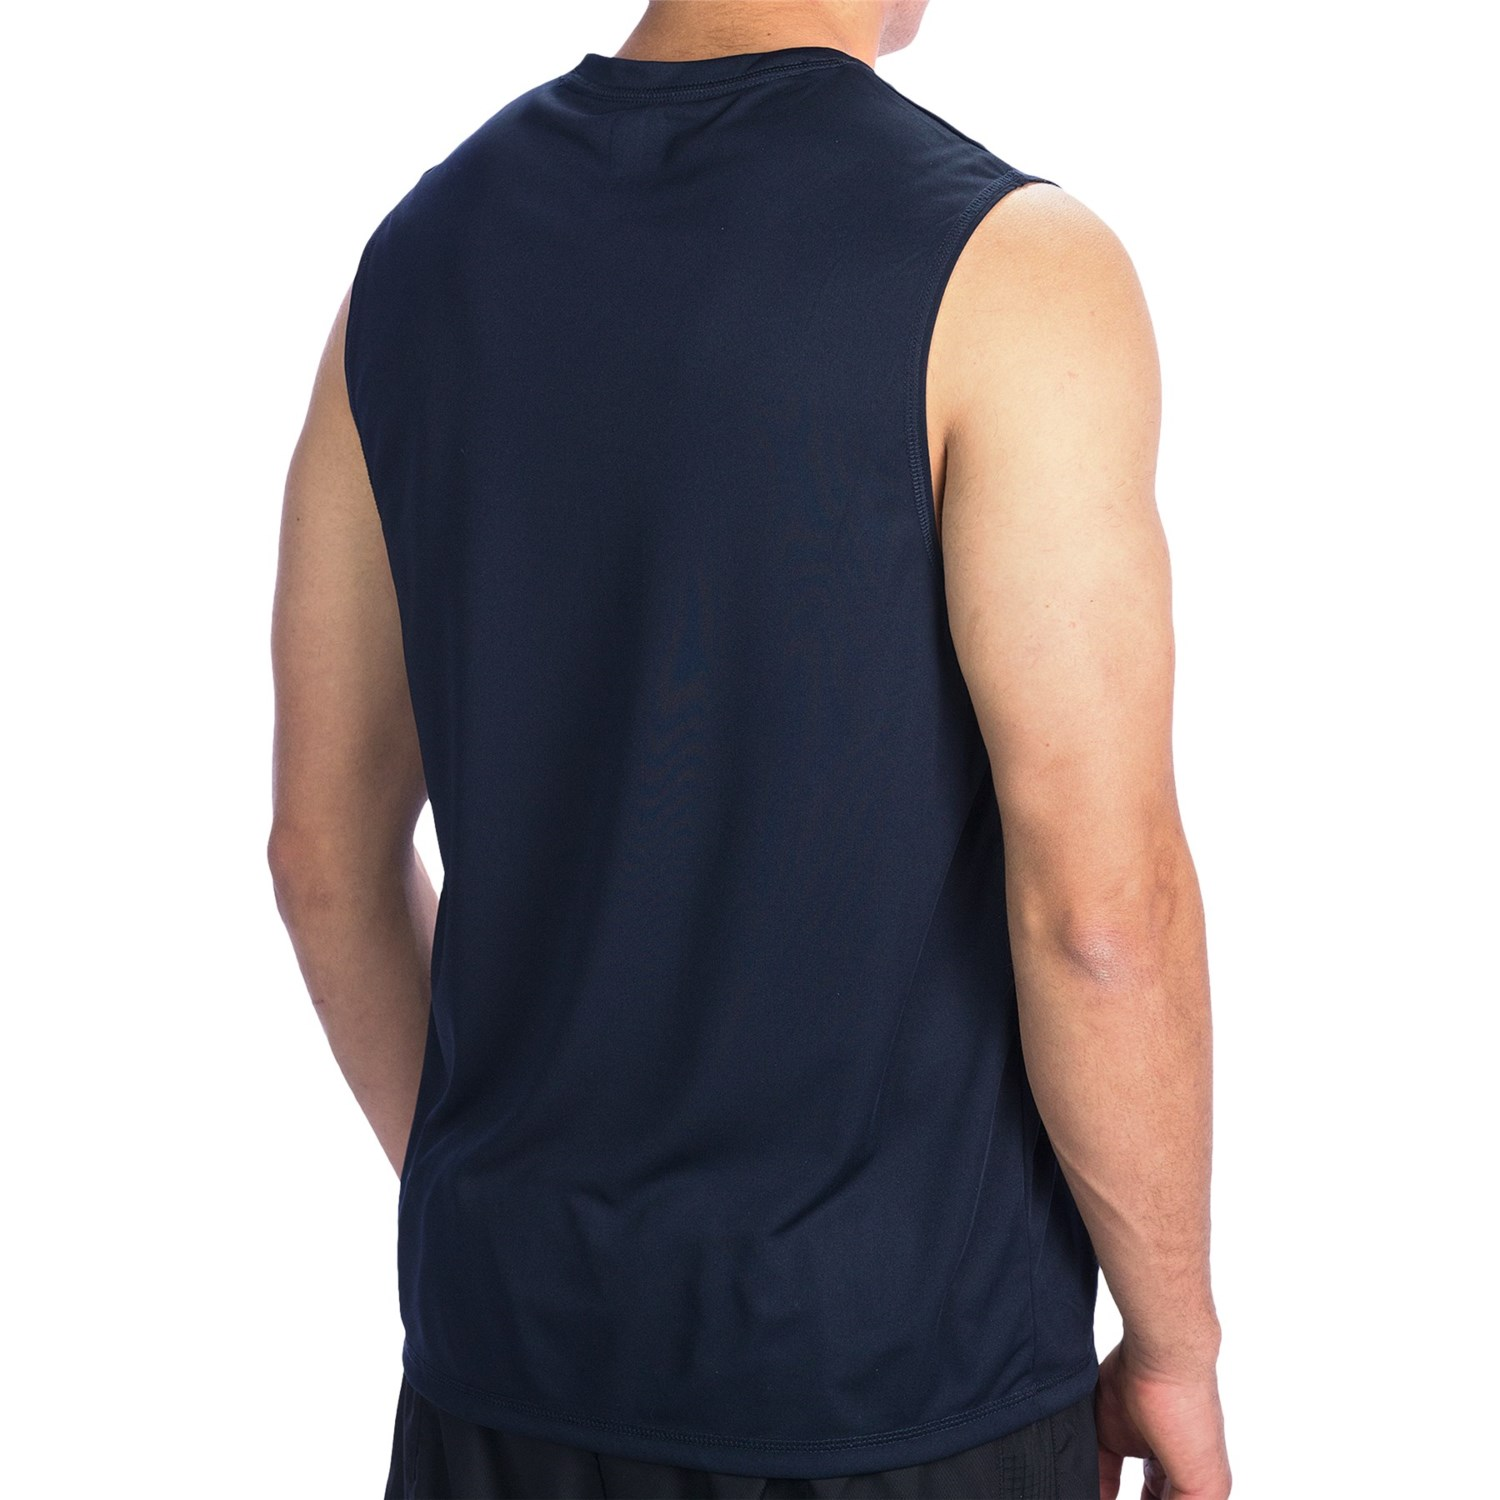 Shop under armour muscle shirts from DICK'S Sporting Goods today. If you find a lower price on under armour muscle shirts somewhere else, we'll match it with our Best Price Guarantee! Check out customer reviews on under armour muscle shirts and save big on a variety of products. Plus, ScoreCard members earn points on every purchase.